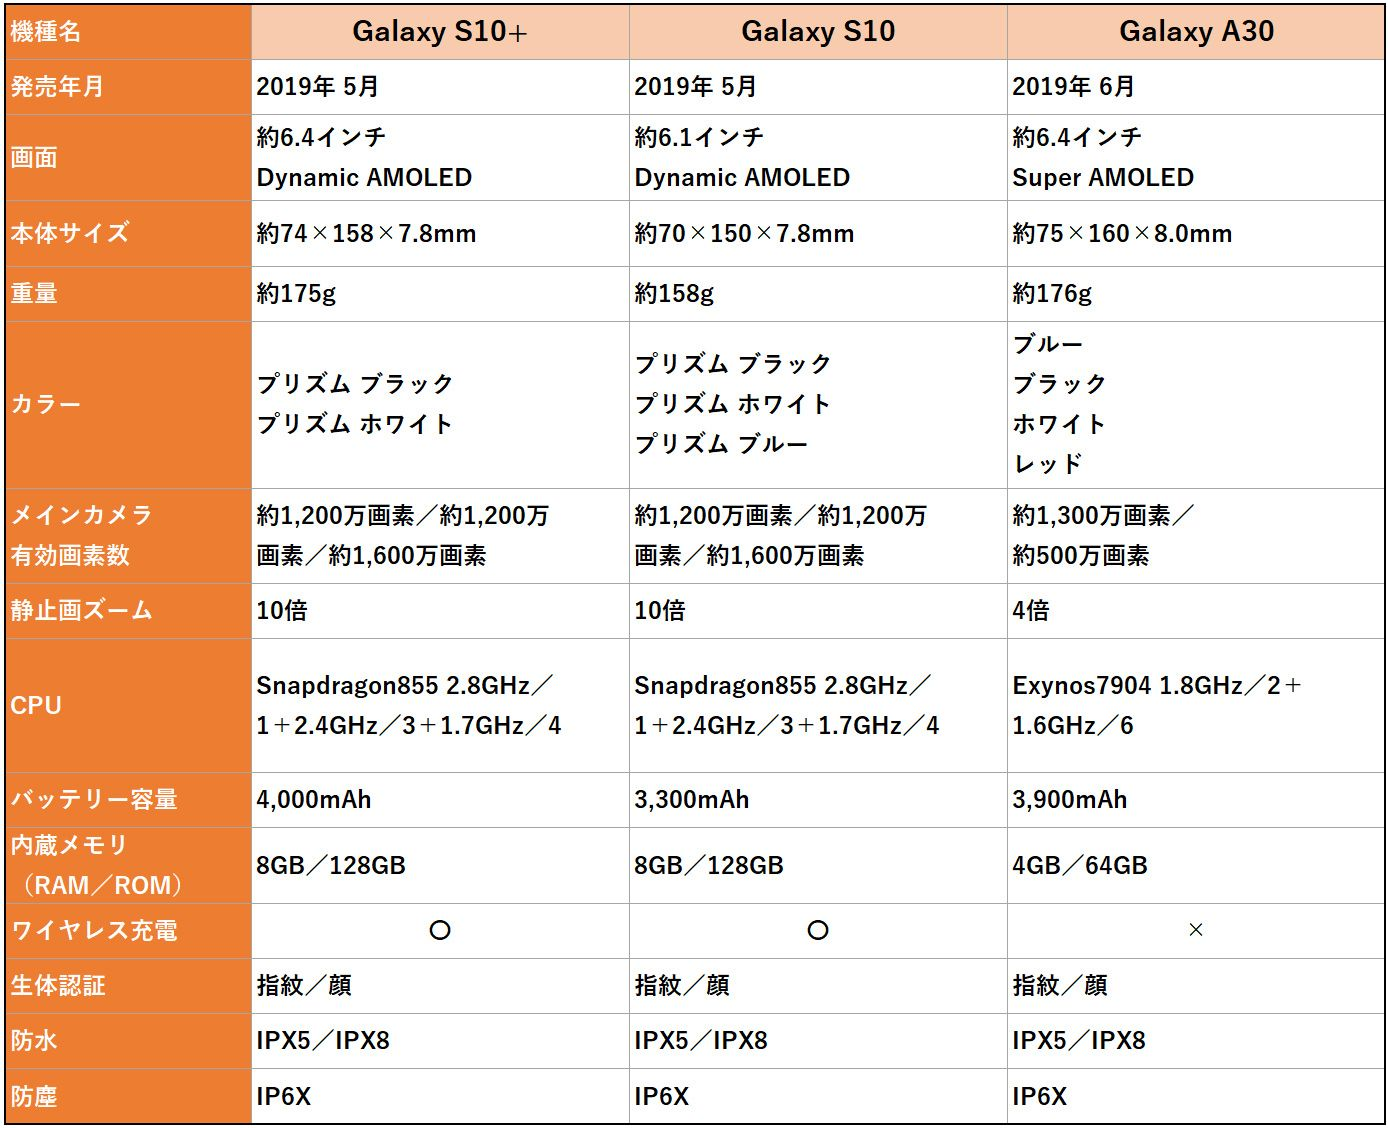 Galaxy S10+、S10、A30のスペック比較表